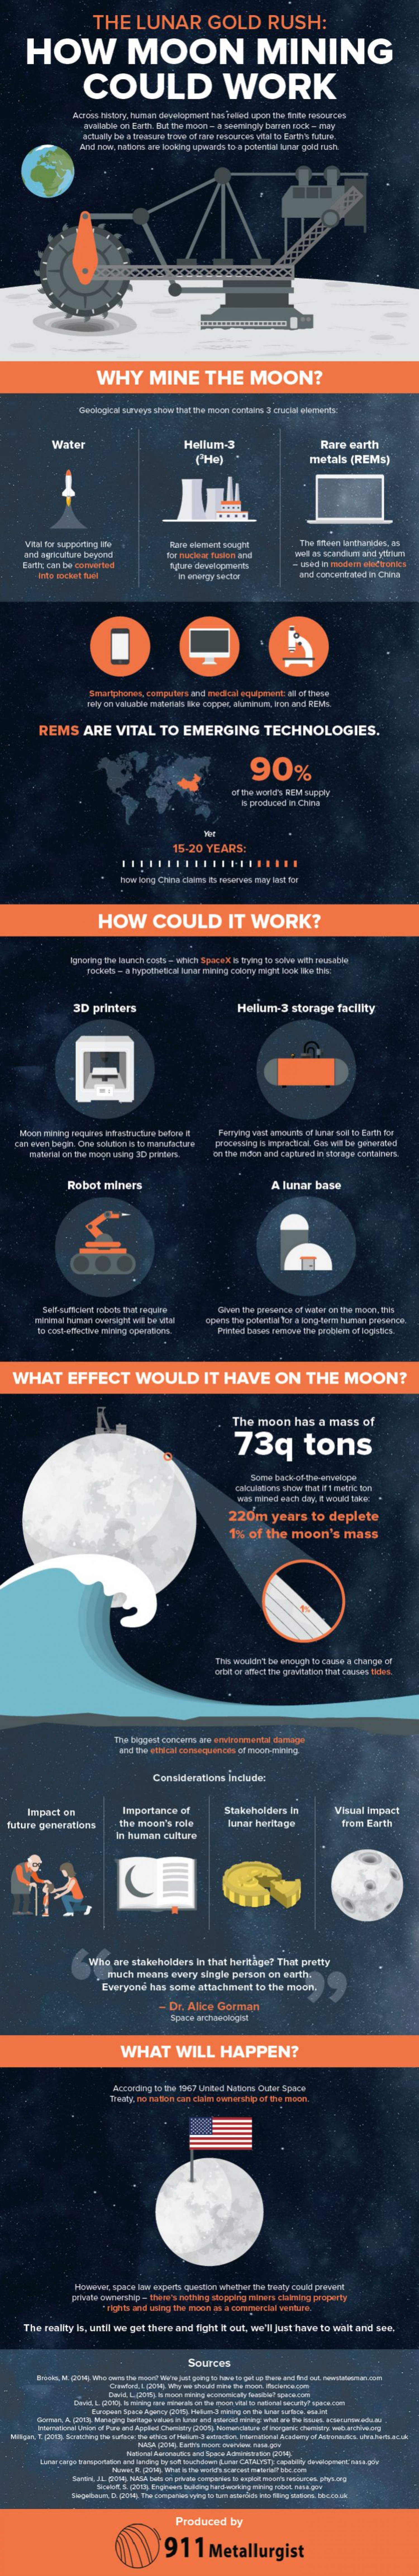 The Lunar Gold Rush: How Moon Mining Could Work Infographic